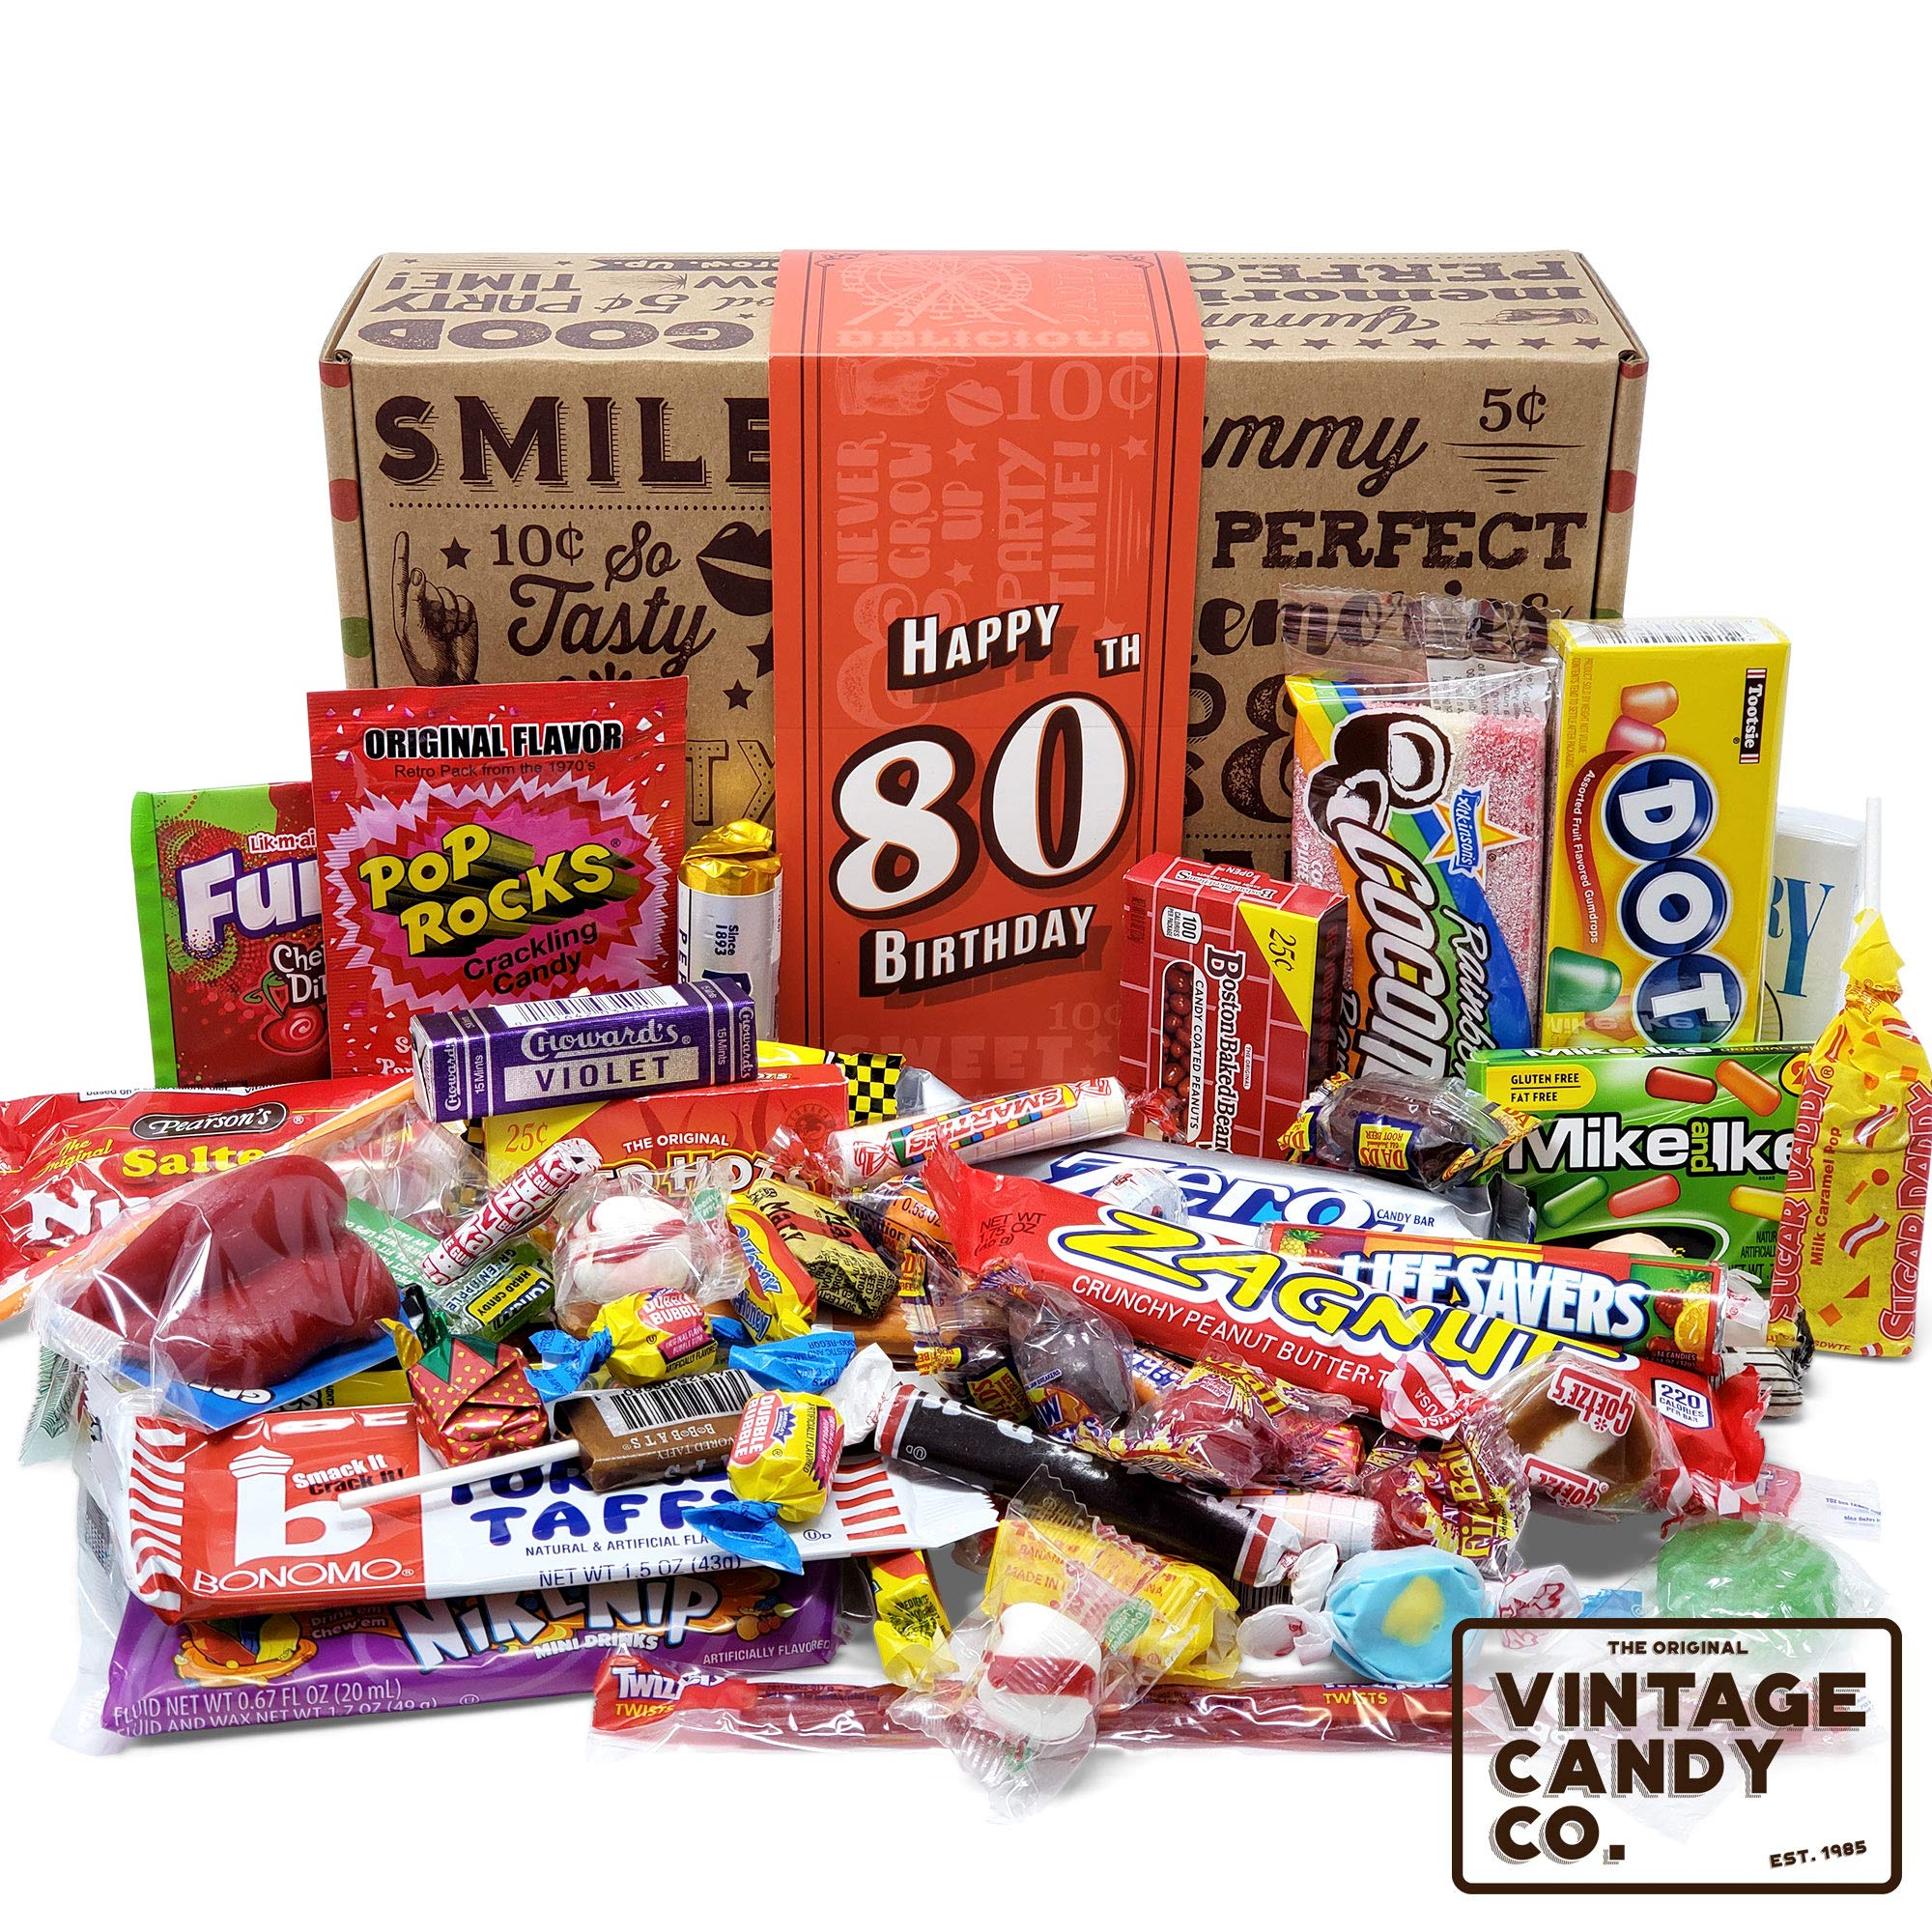 80TH BIRTHDAY RETRO CANDY GIFT BOX - 1939 Decade Nostalgic Childhood Candies  sc 1 st  Amazon.com & 80 Year Old Birthday Gifts: Amazon.com